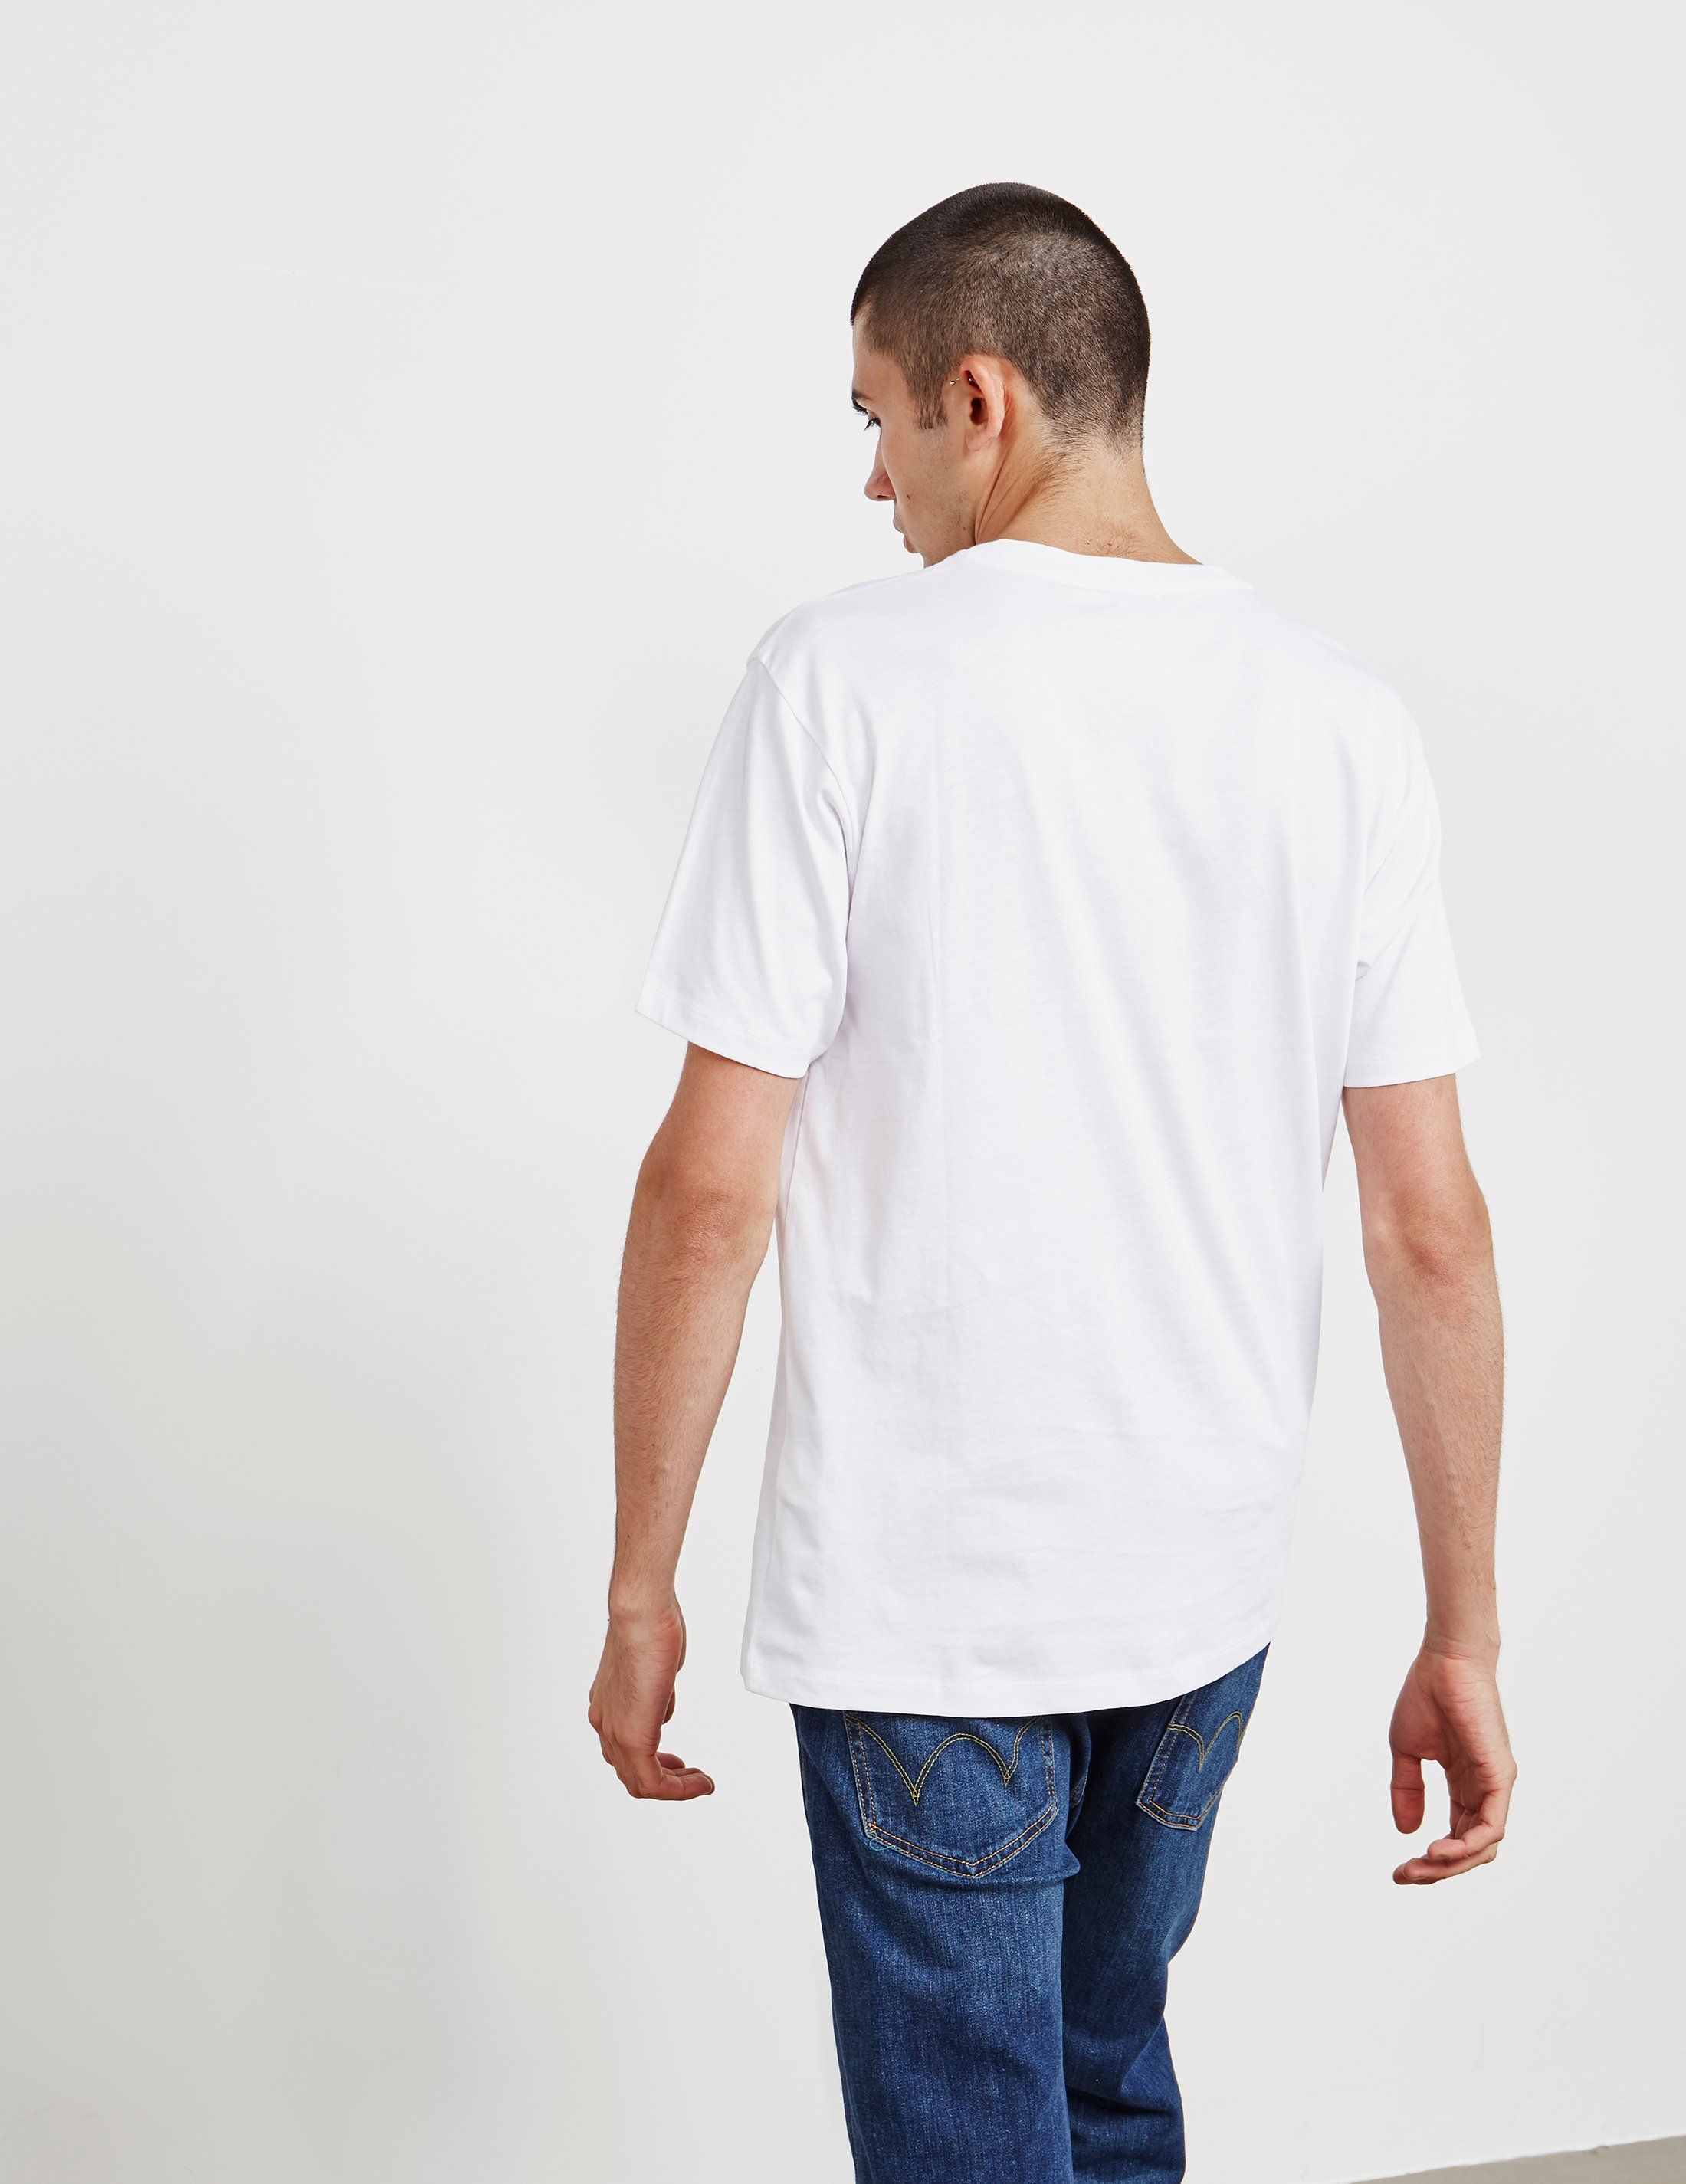 Fiorucci Leather Short Sleeve T-Shirt - Online Exclusive